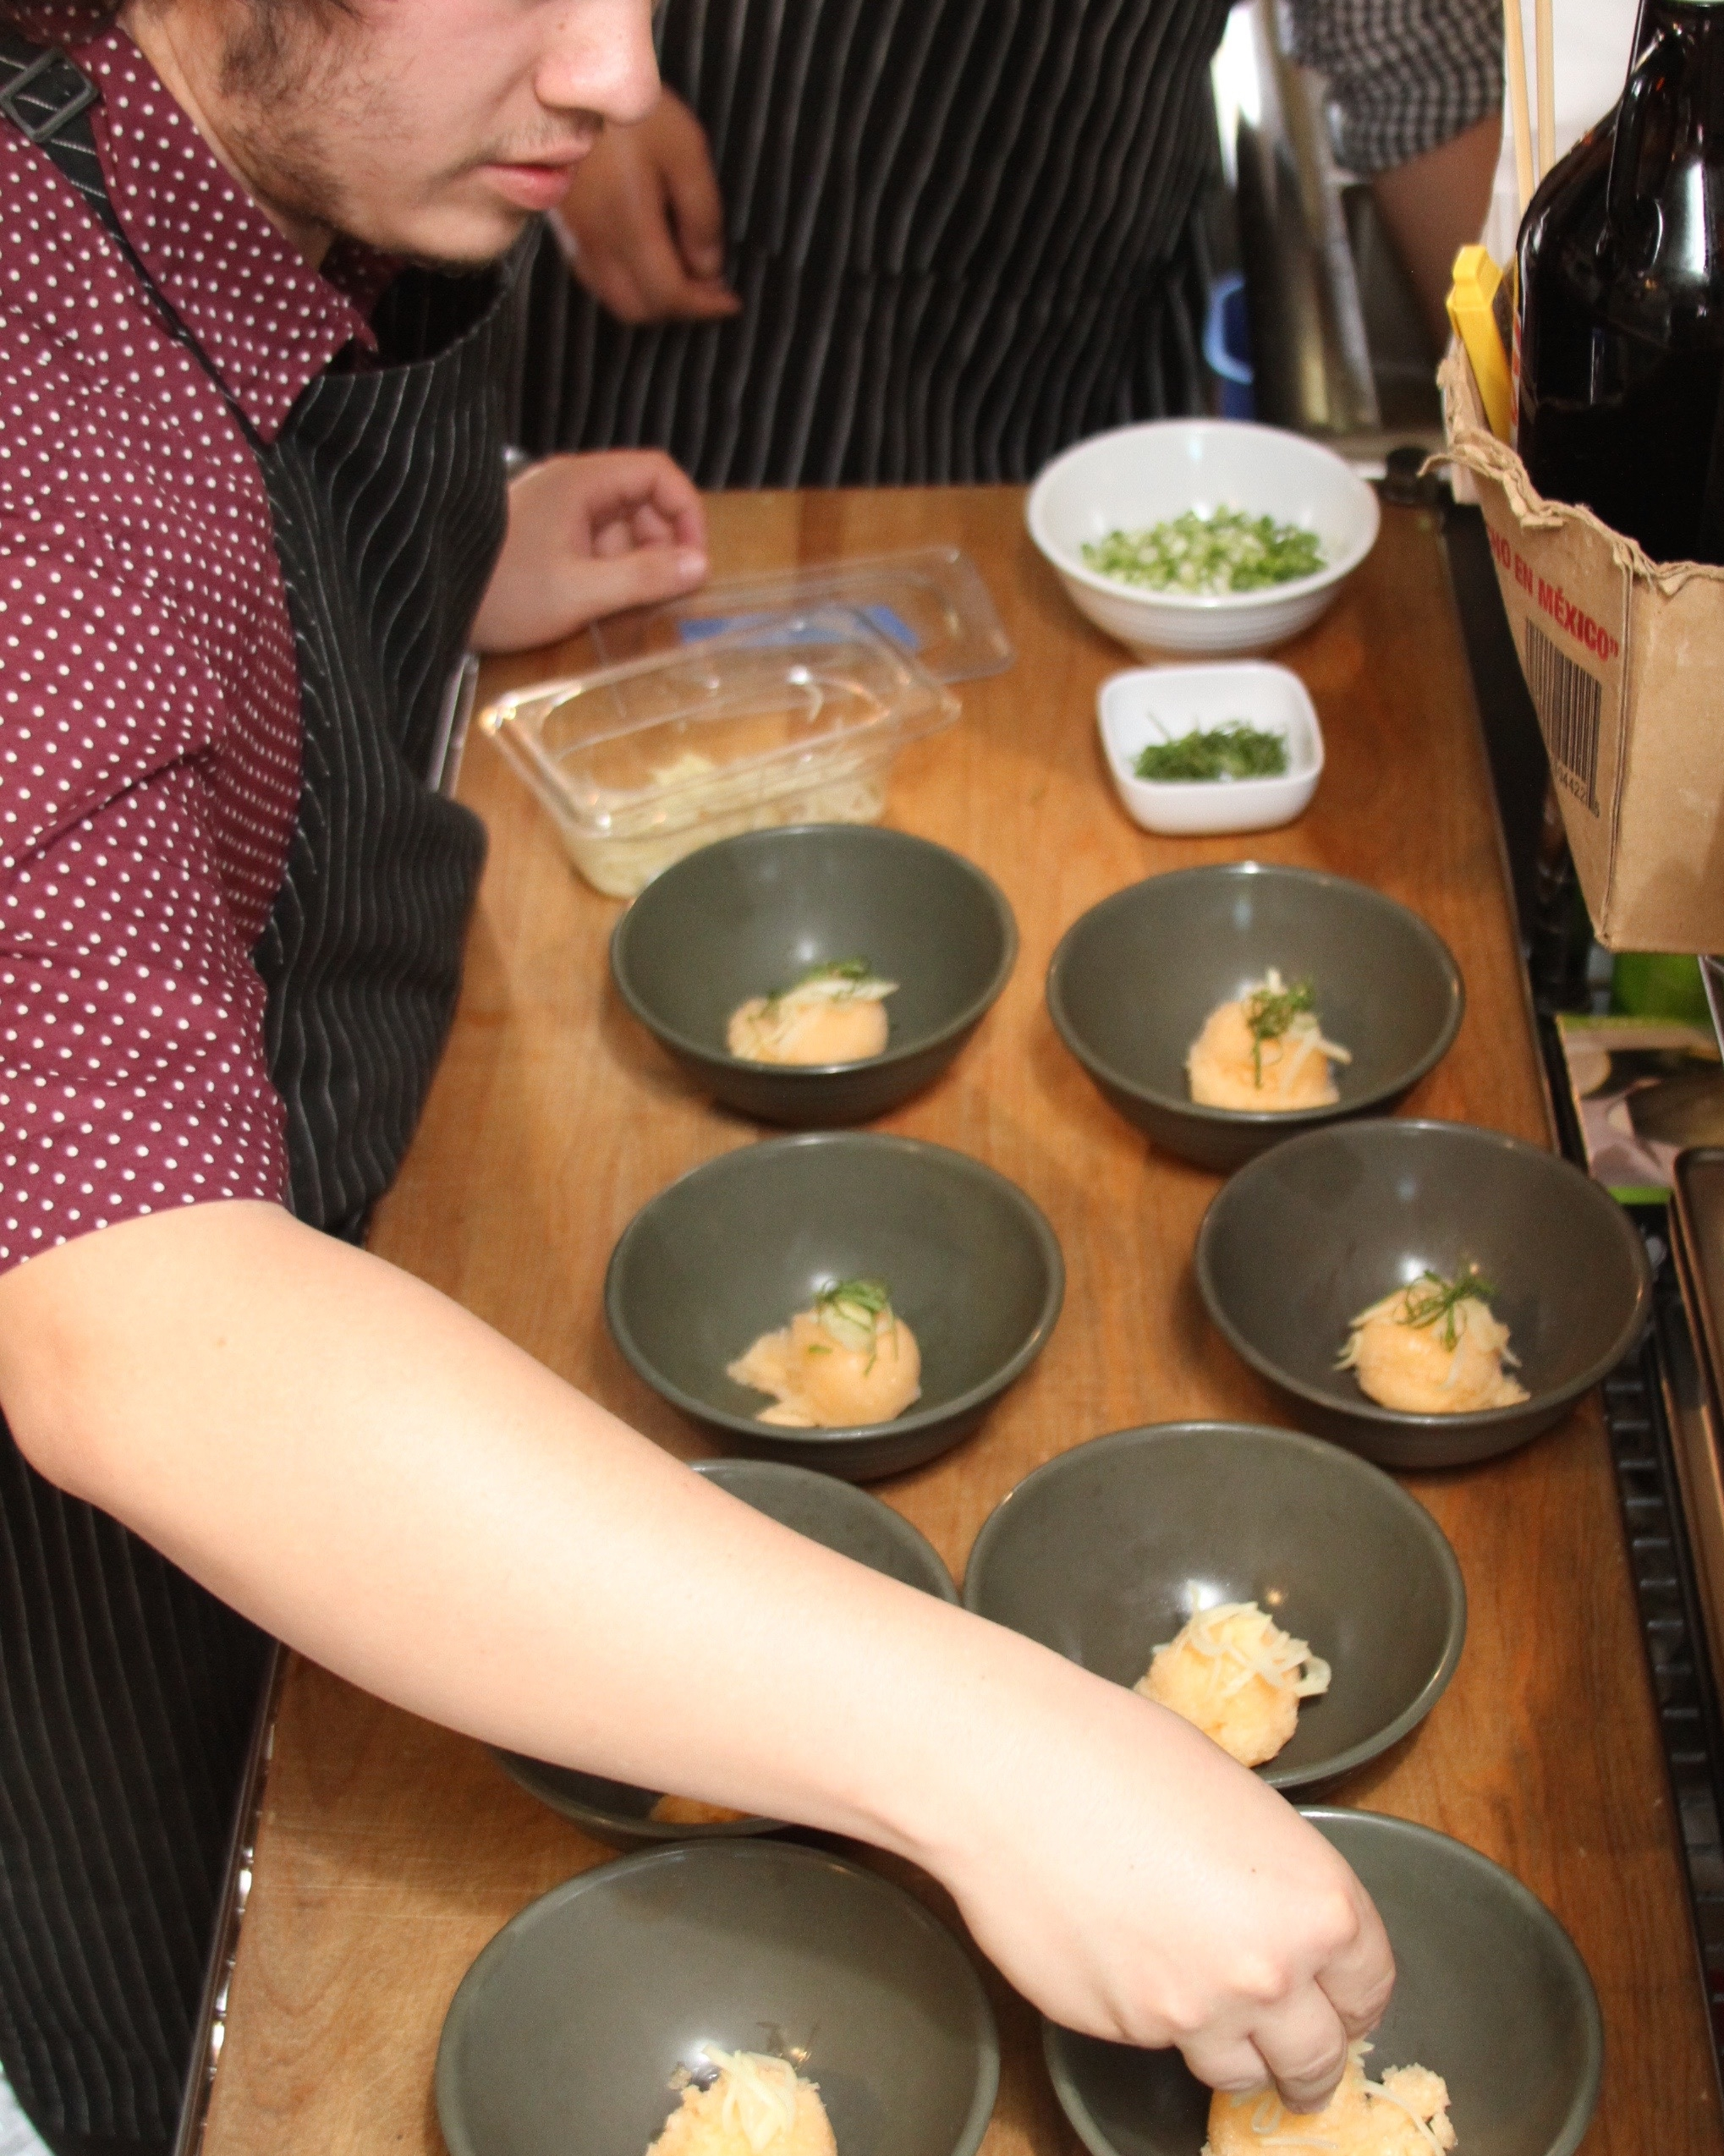 Garnishing the sorbet with mint